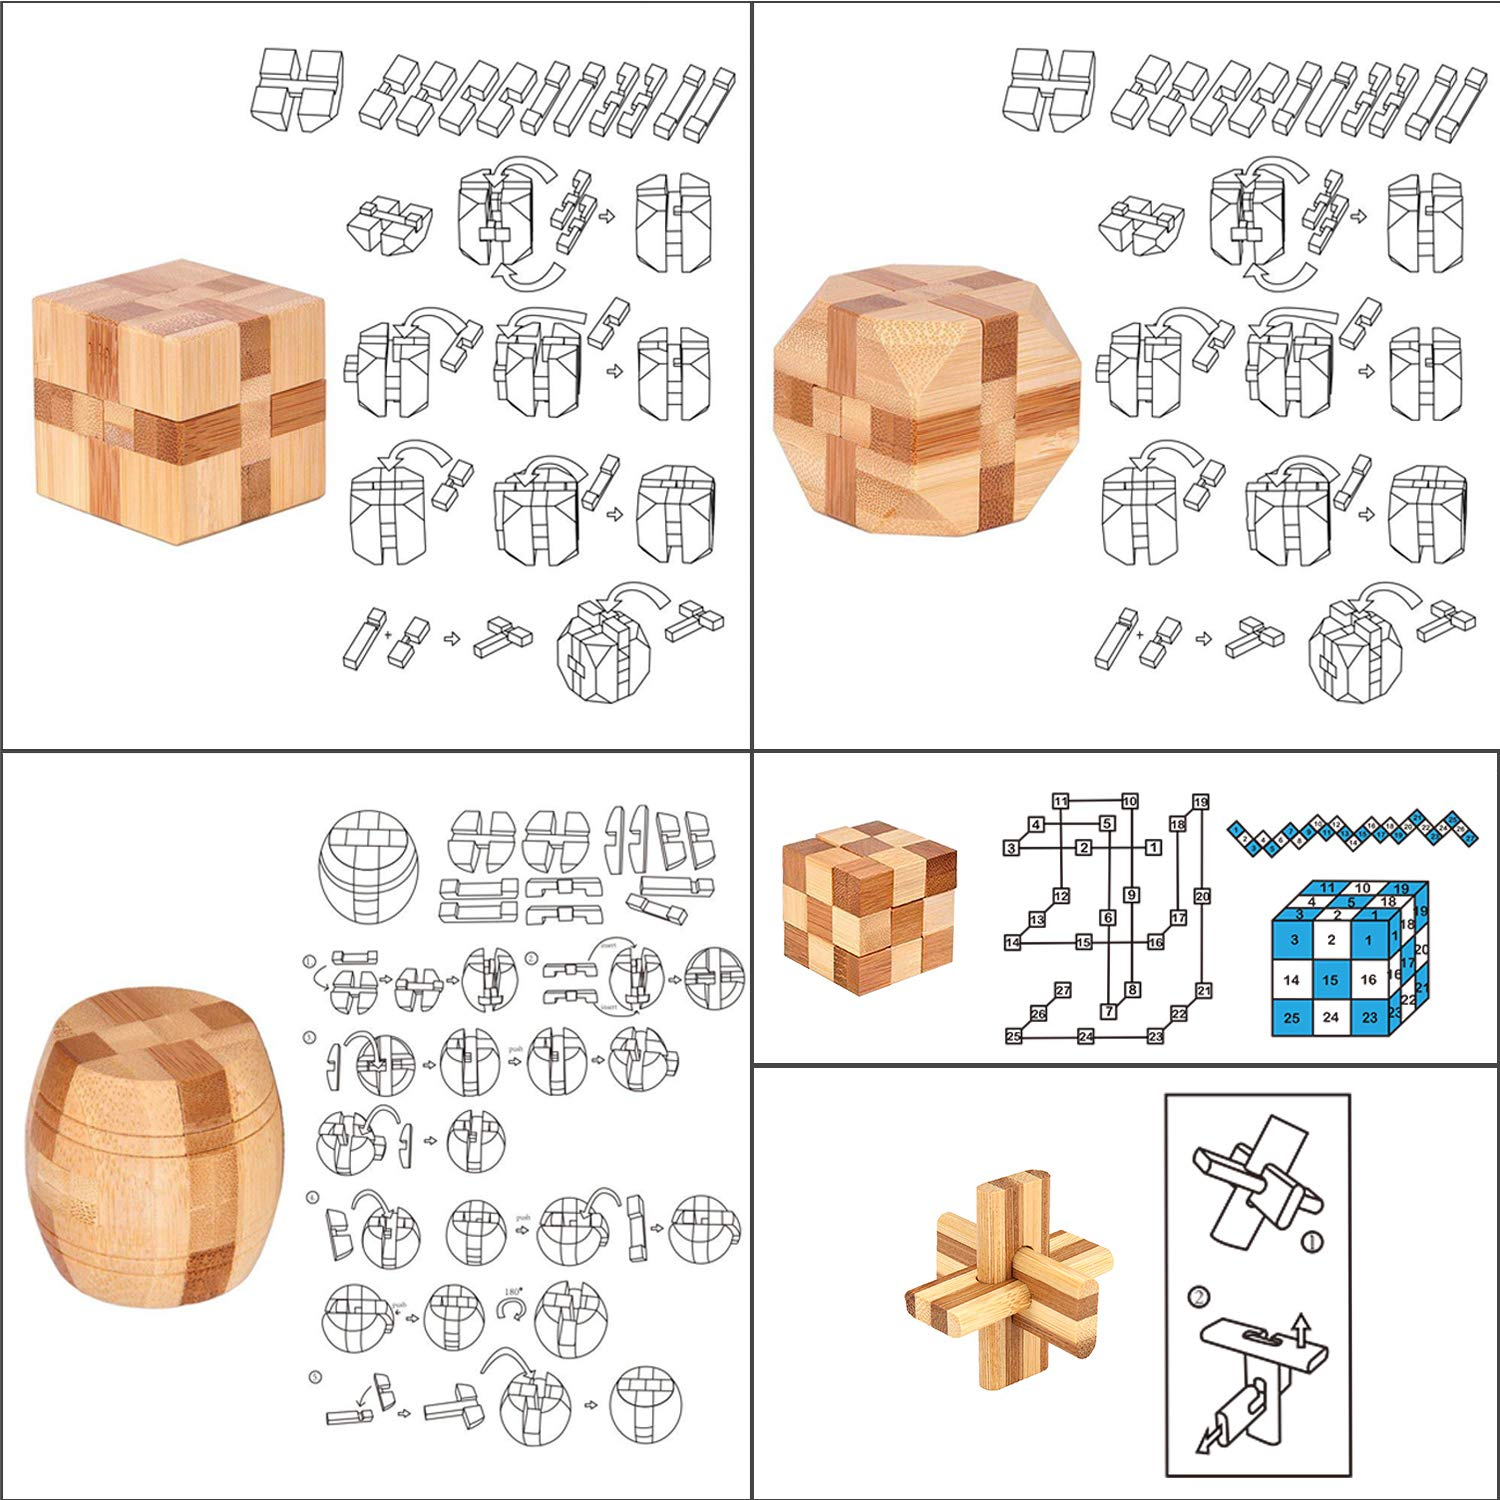 Once ZY Time Puzzles Wooden Puzzles Games Burr Puzzles Jigsaw Lock 3D  Handmade Brain Teaser Intellectual Educational Toys for Kids Adults Mini  Size